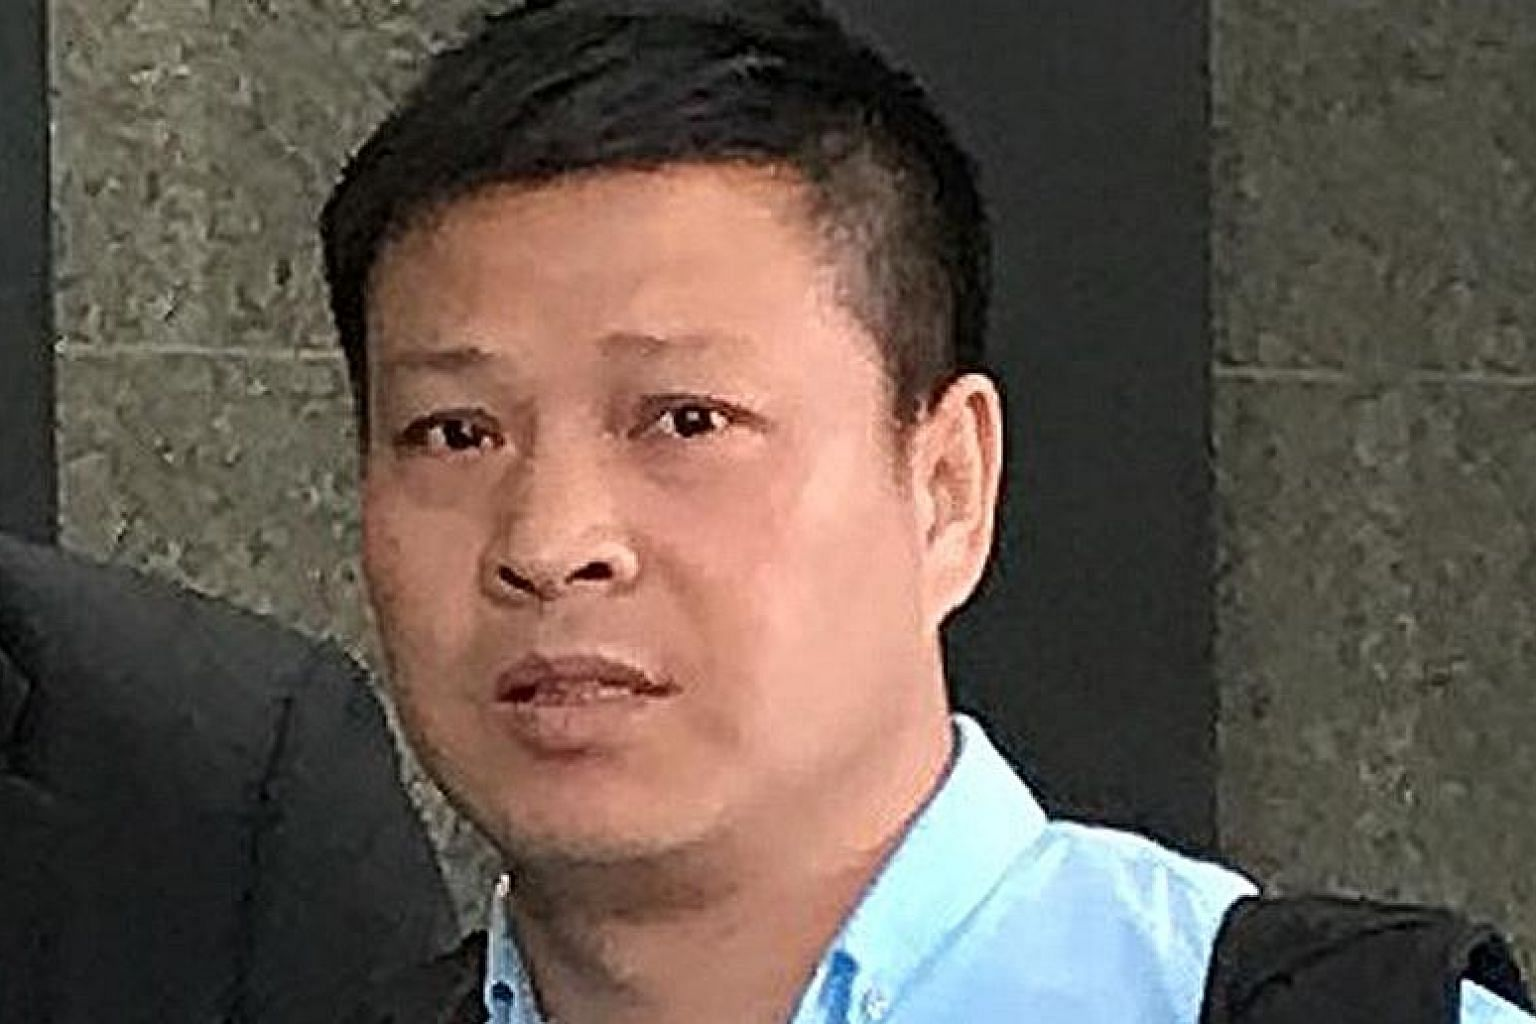 Pan, the captain of the container ship that carried the SAF's Terrex armoured vehicles, faces a fine and up to seven years in jail if convicted.